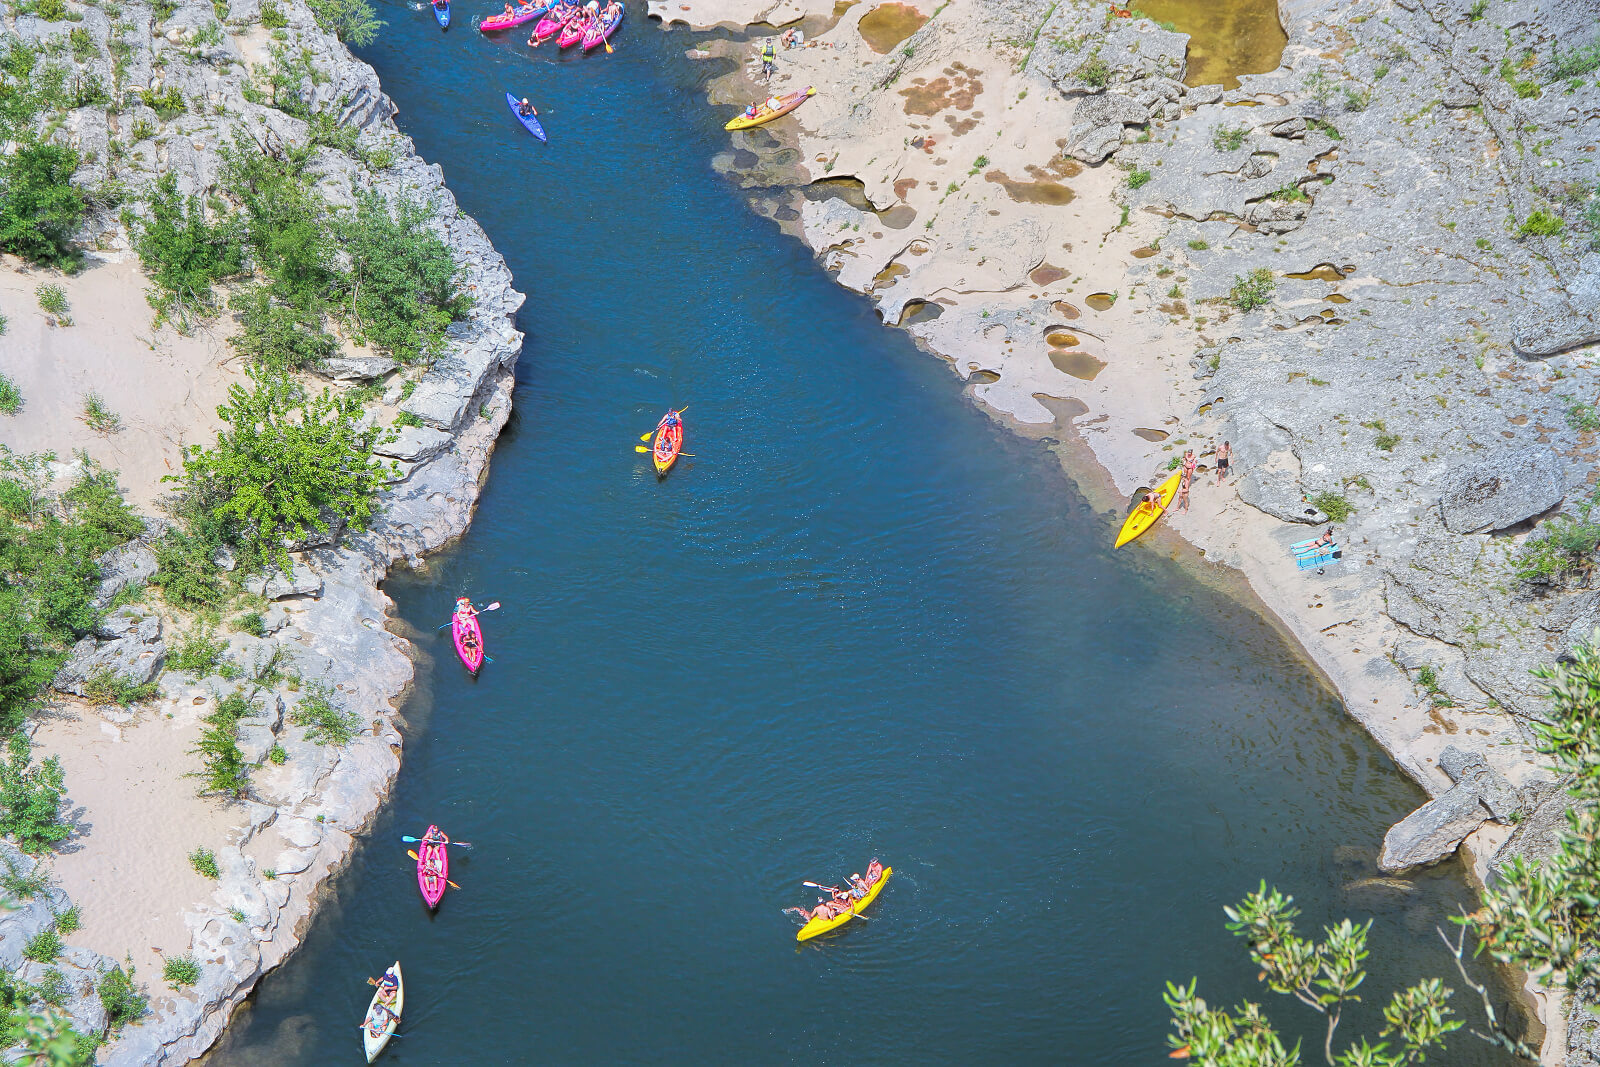 Kayak ardeche gorge in France